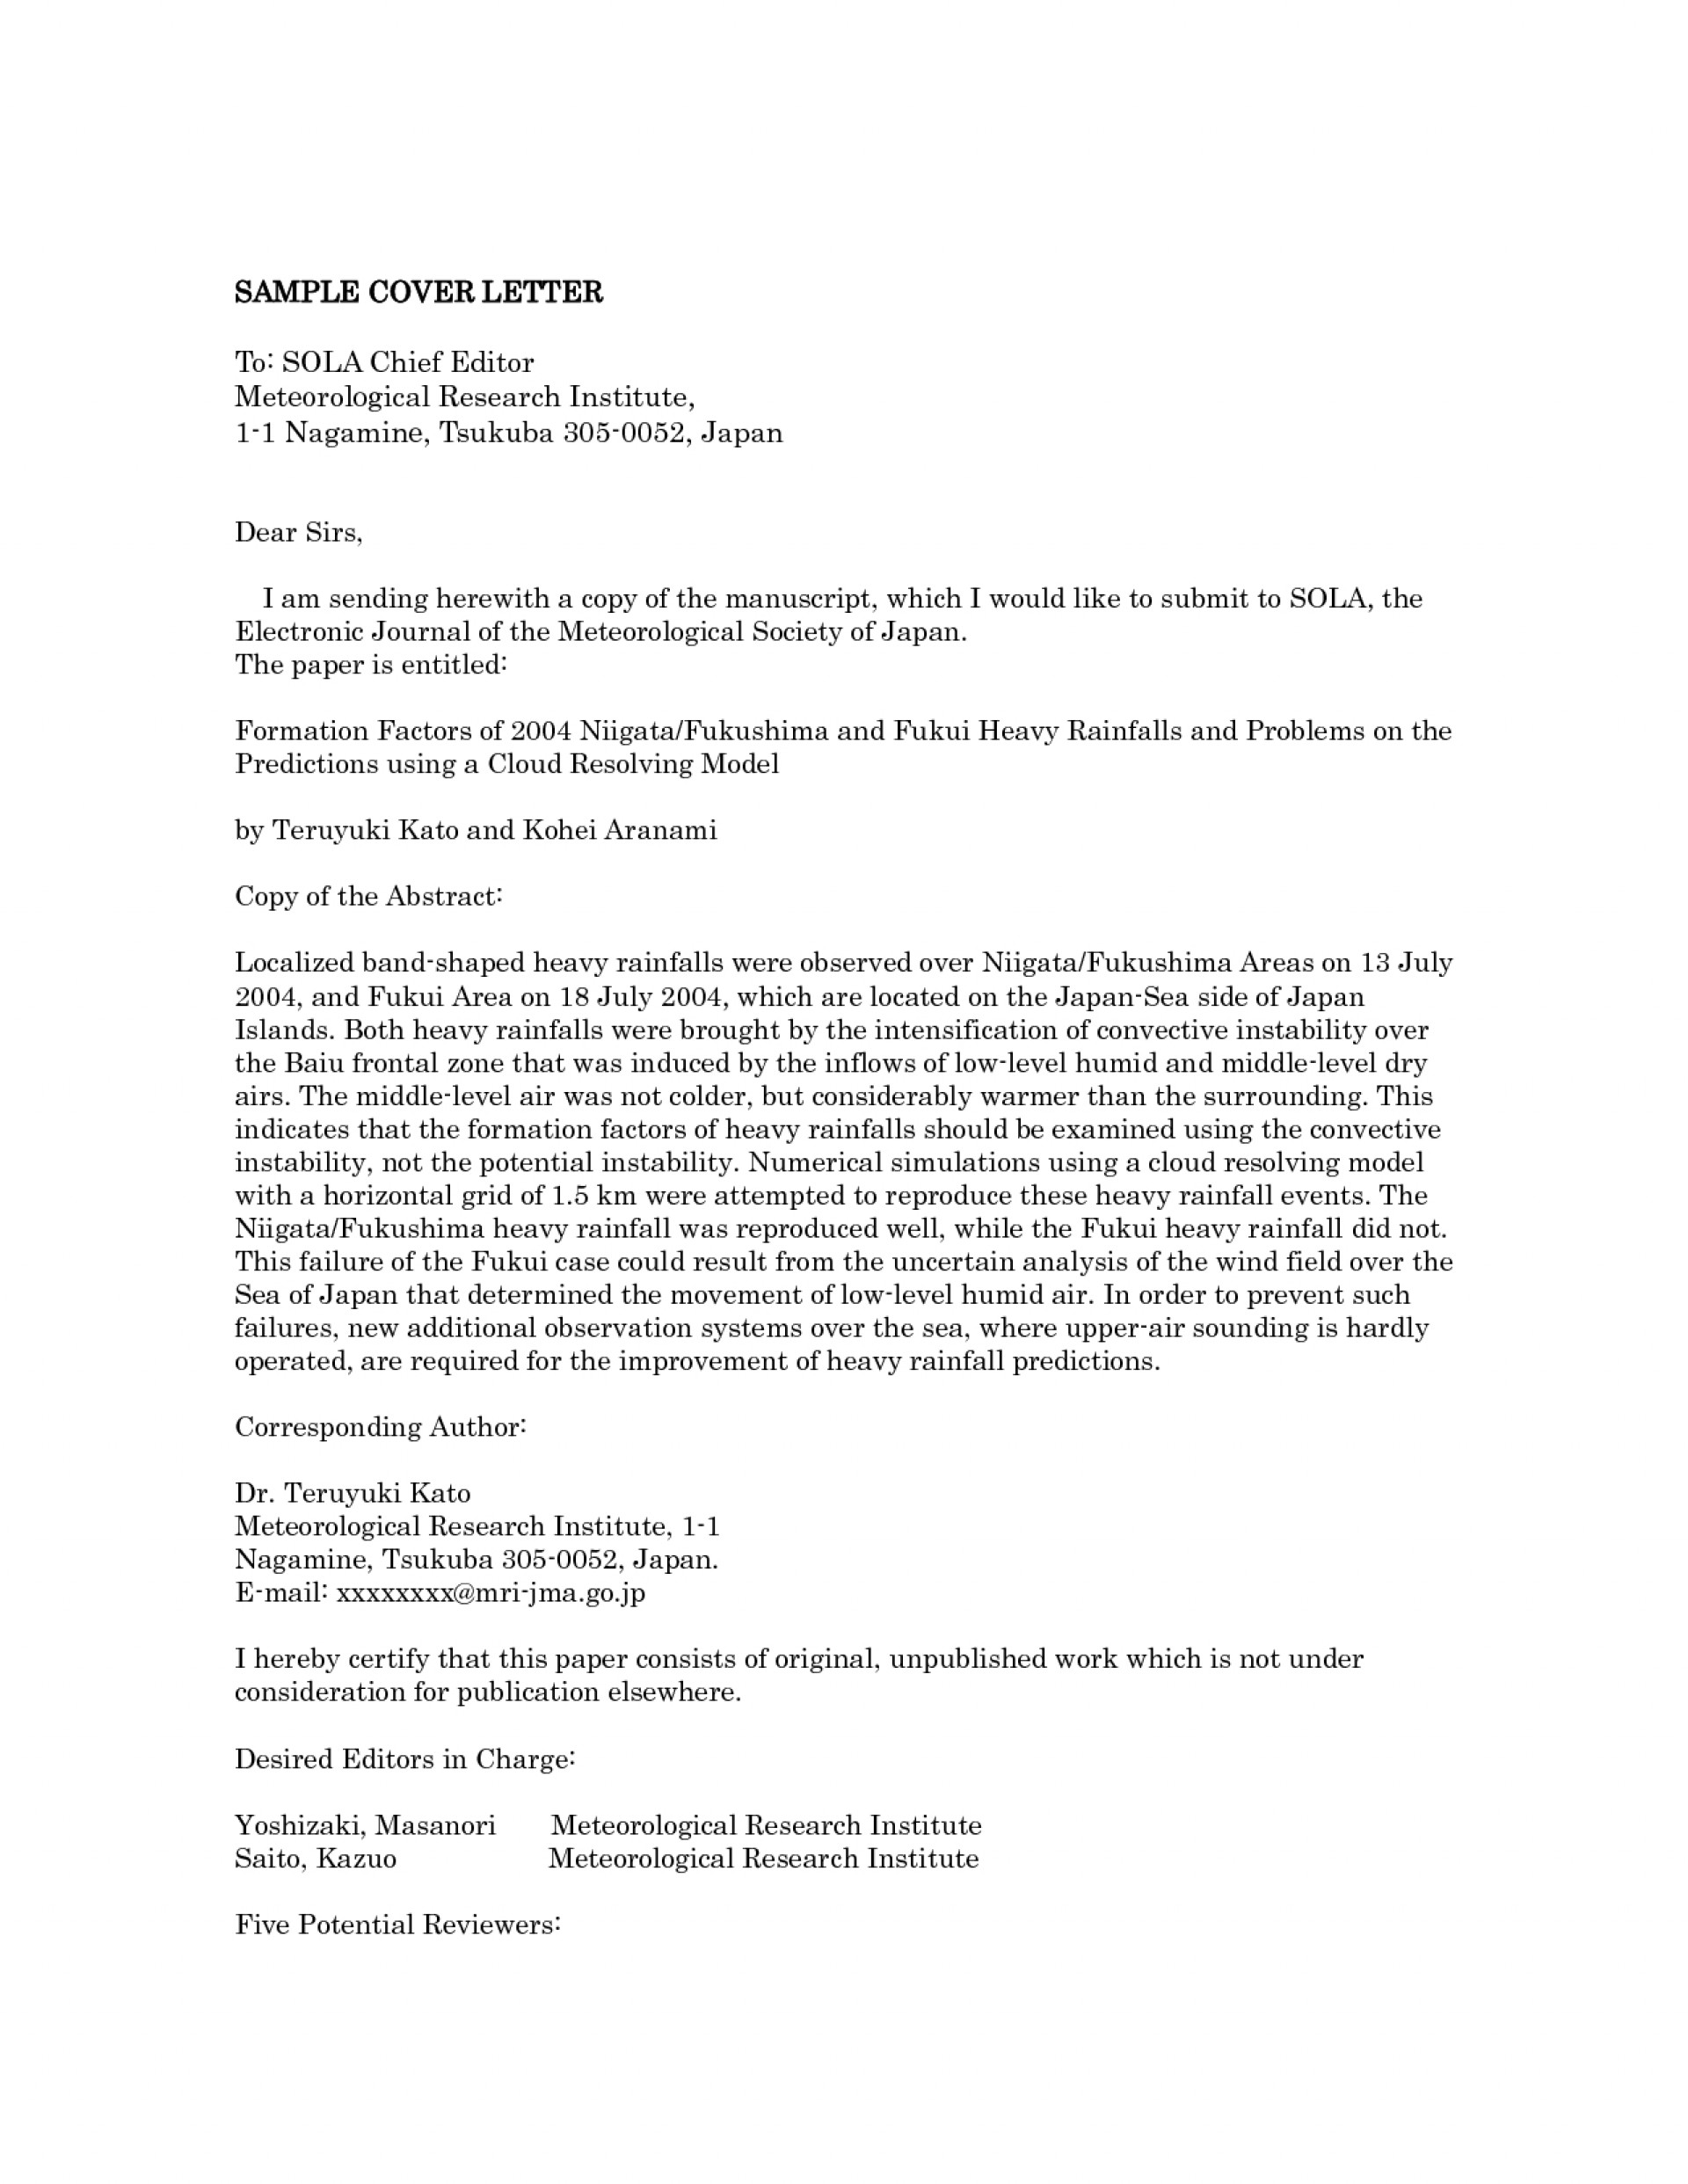 014 Research Paper Editor Cover Letter Breathtaking Software Free Editorial 1920